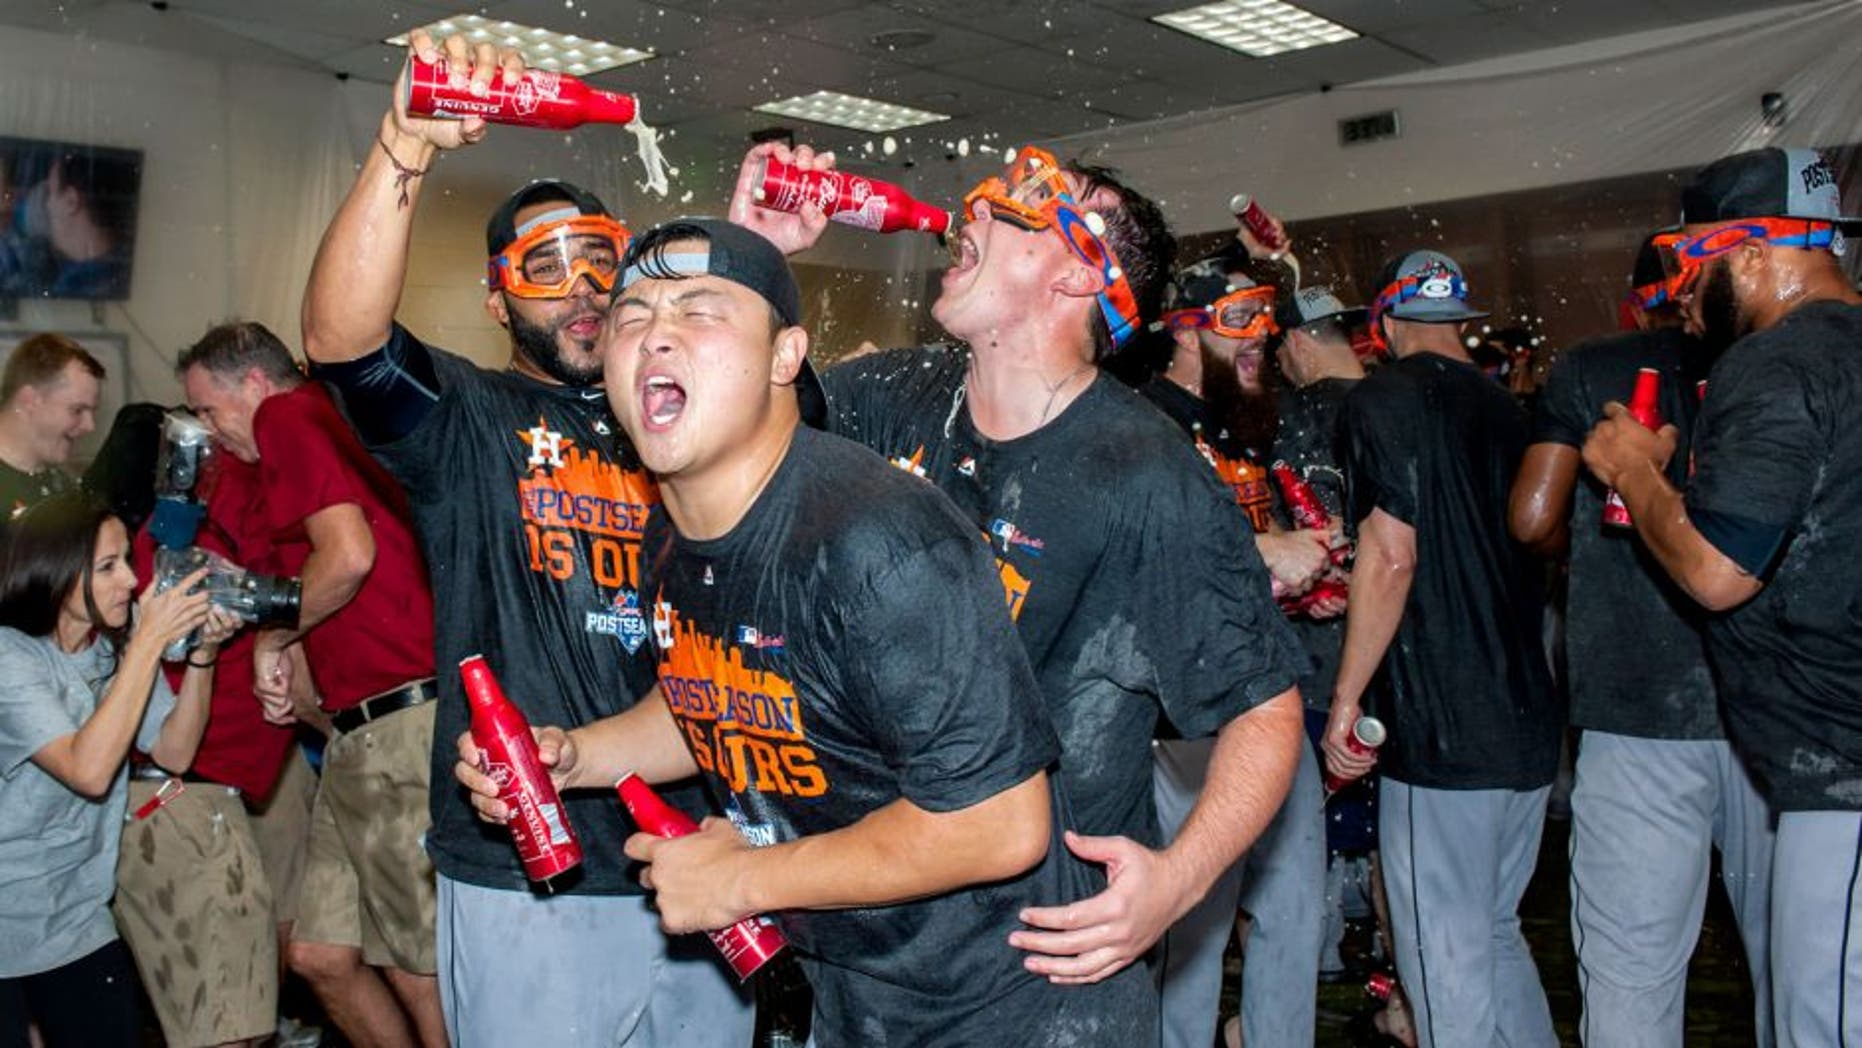 PHOENIX, AZ - OCTOBER 4: Hank Conger #16 of the Houston Astros celebrates with his team after clinching an American League wild card spot after a MLB game against the Arizona Diamondbacks on October 4, 2015 at Chase Field in Phoenix, Arizona. (Photo by Darin Wallentine/Getty Images)